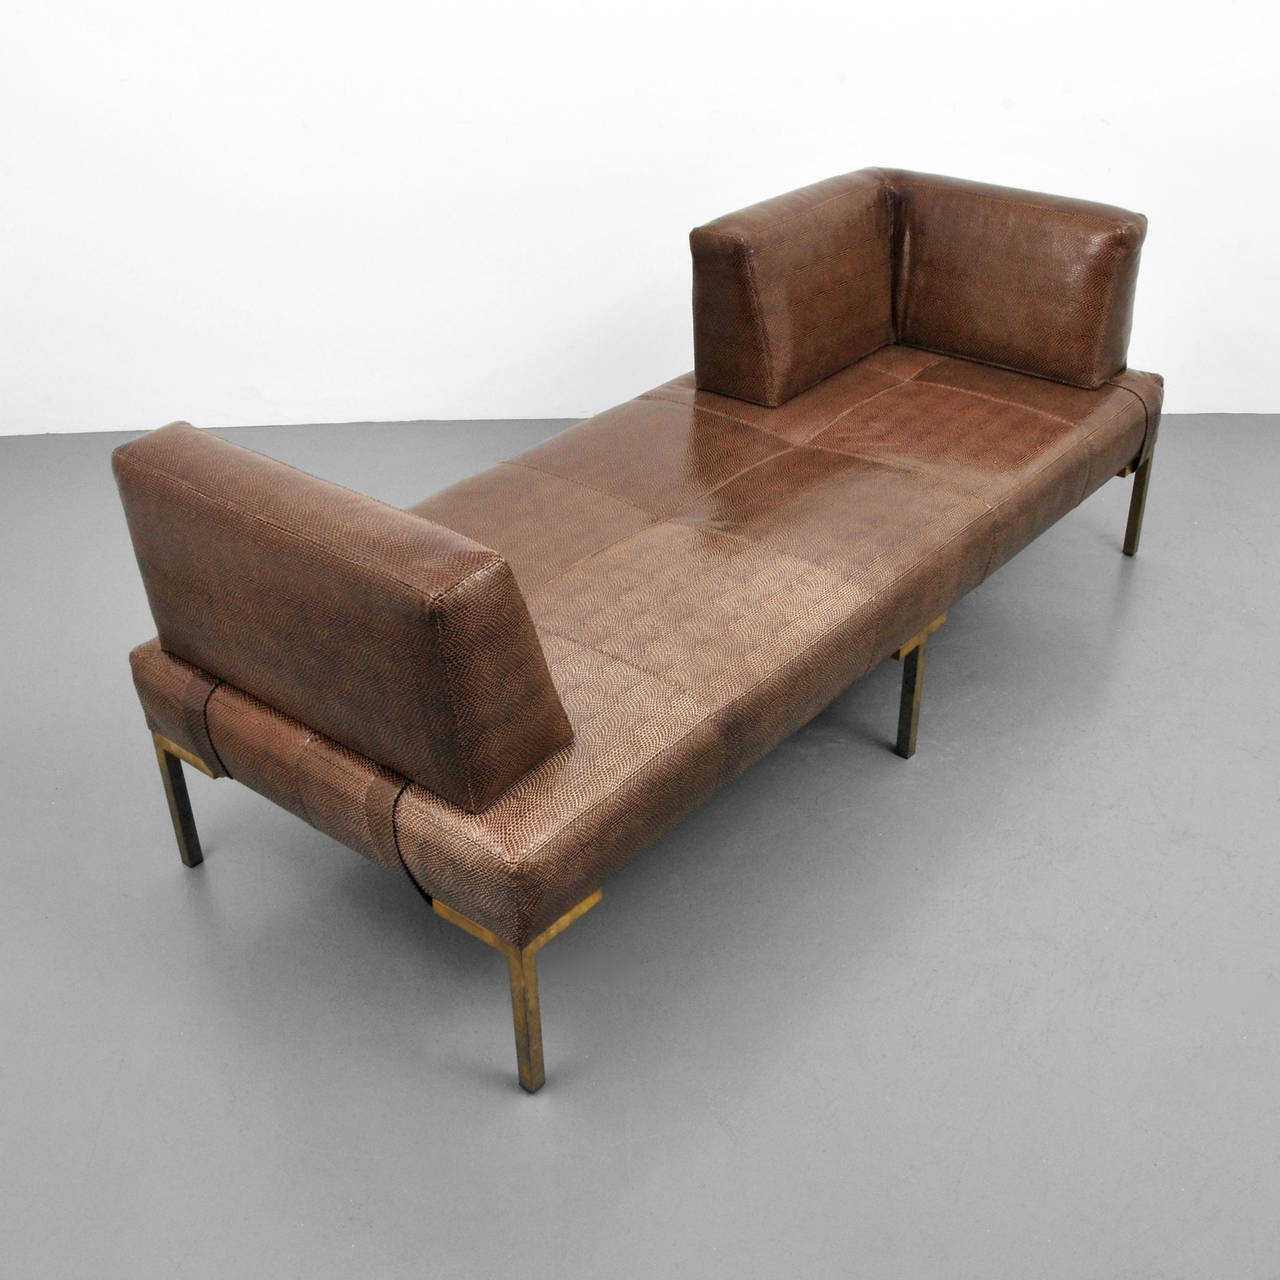 Recent Luigi Gentile Leather Daybeds Or Chaise Lounges, Two Available Intended For Chaise Lounge Daybeds (View 1 of 15)